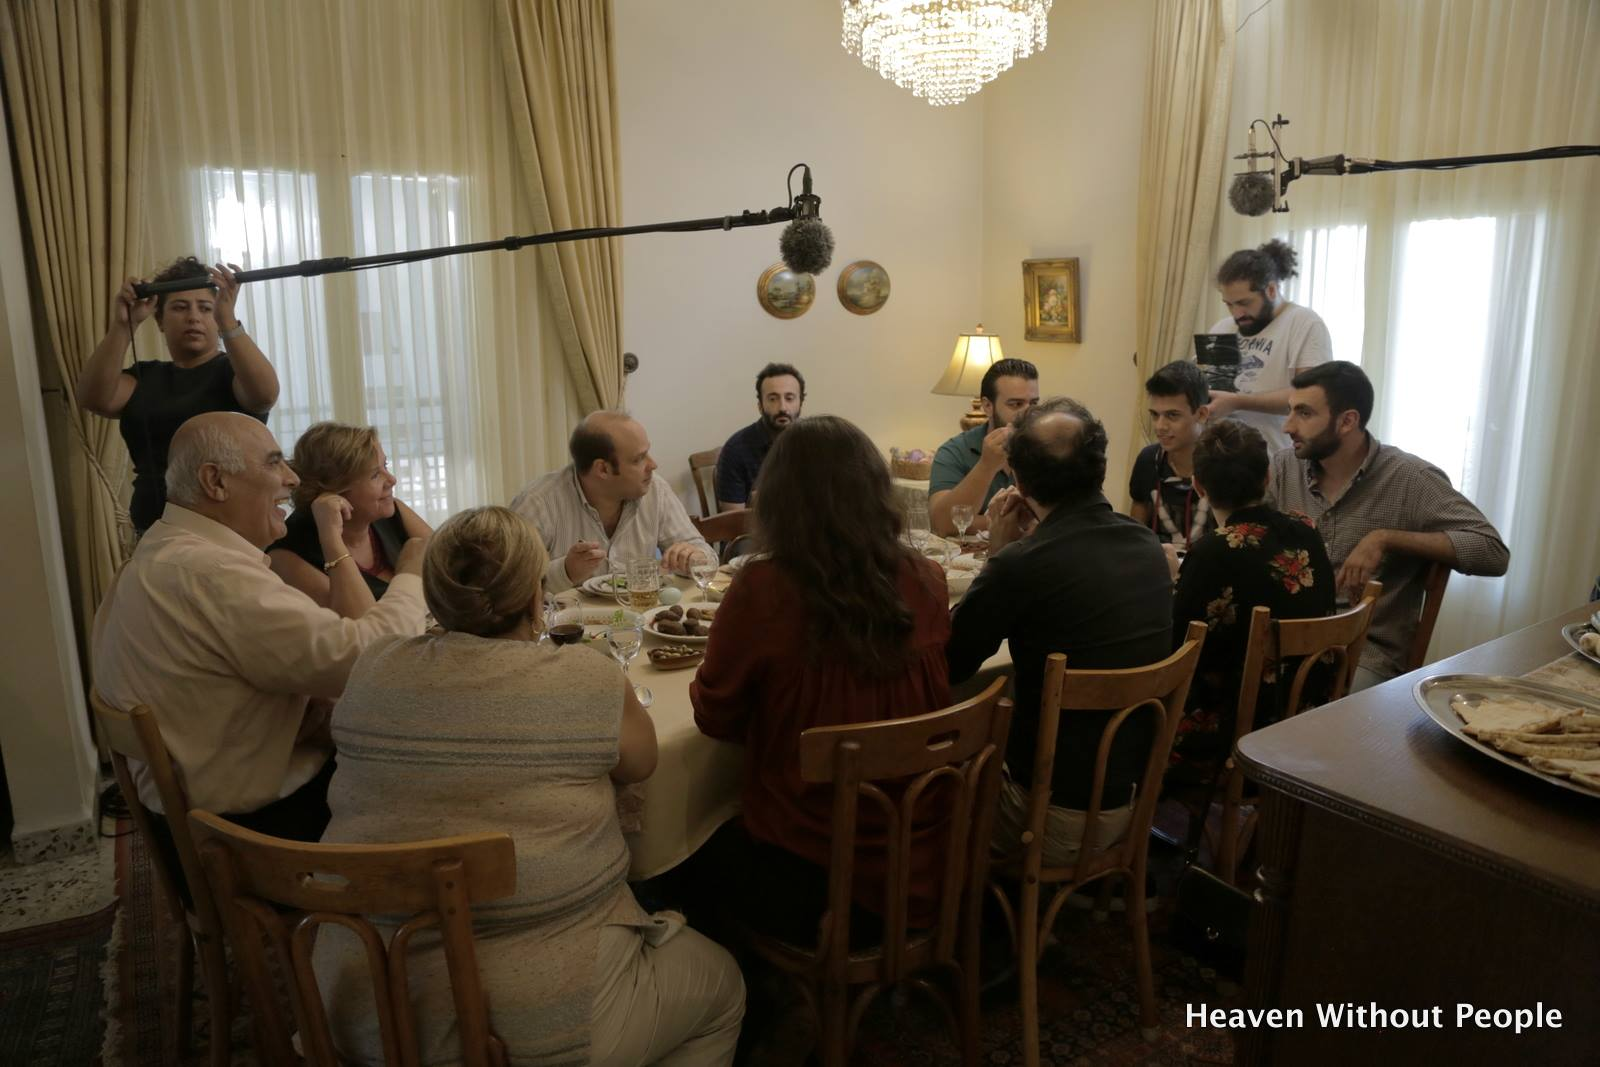 Heaven Without People cast at the dinner table